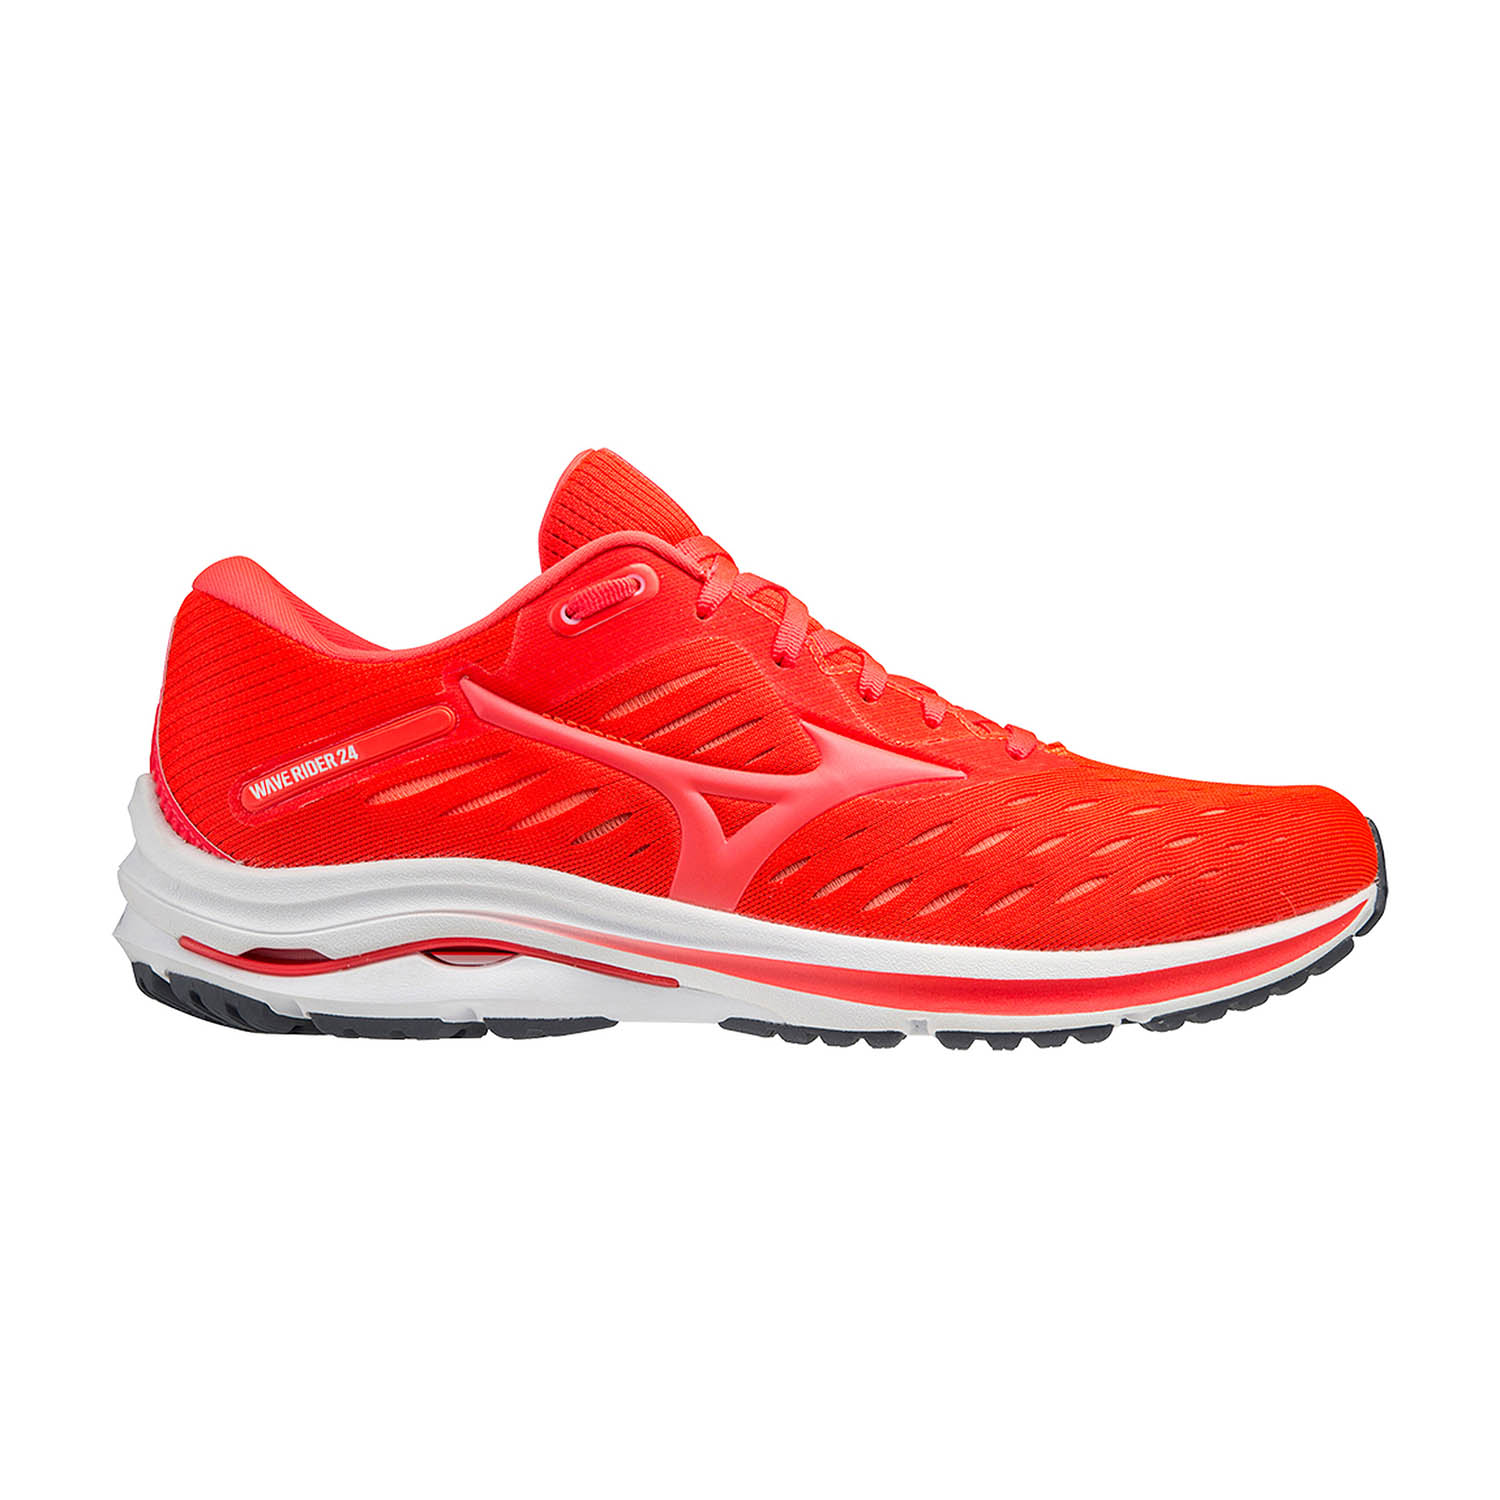 Mizuno Wave Rider 24 - Ignition Red/Fiery Coral 2